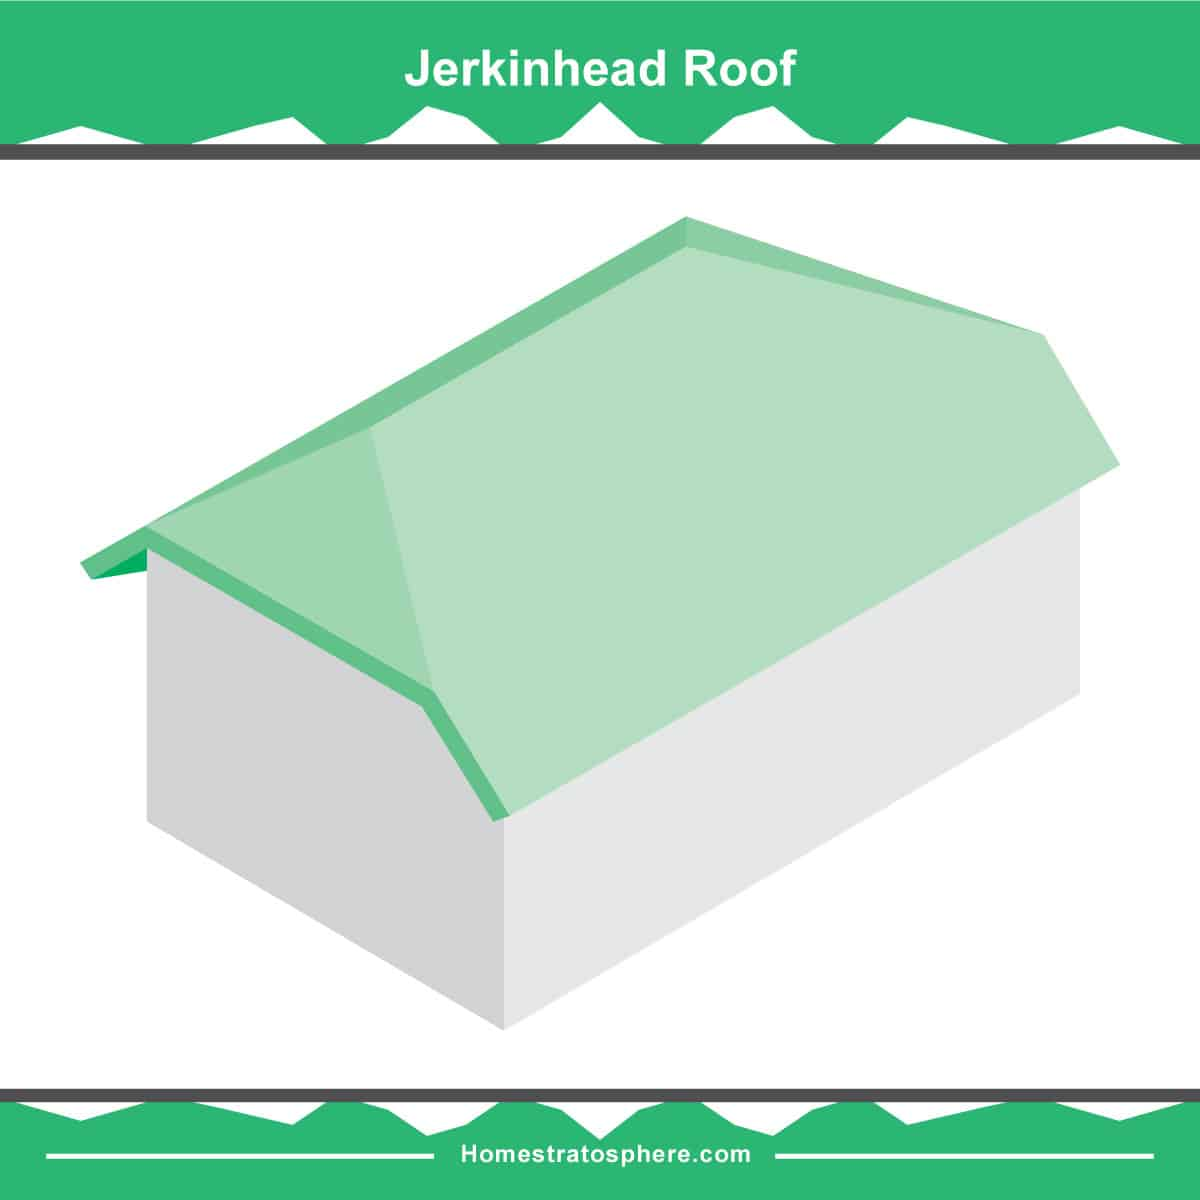 Jerkinhead roof roof diagram